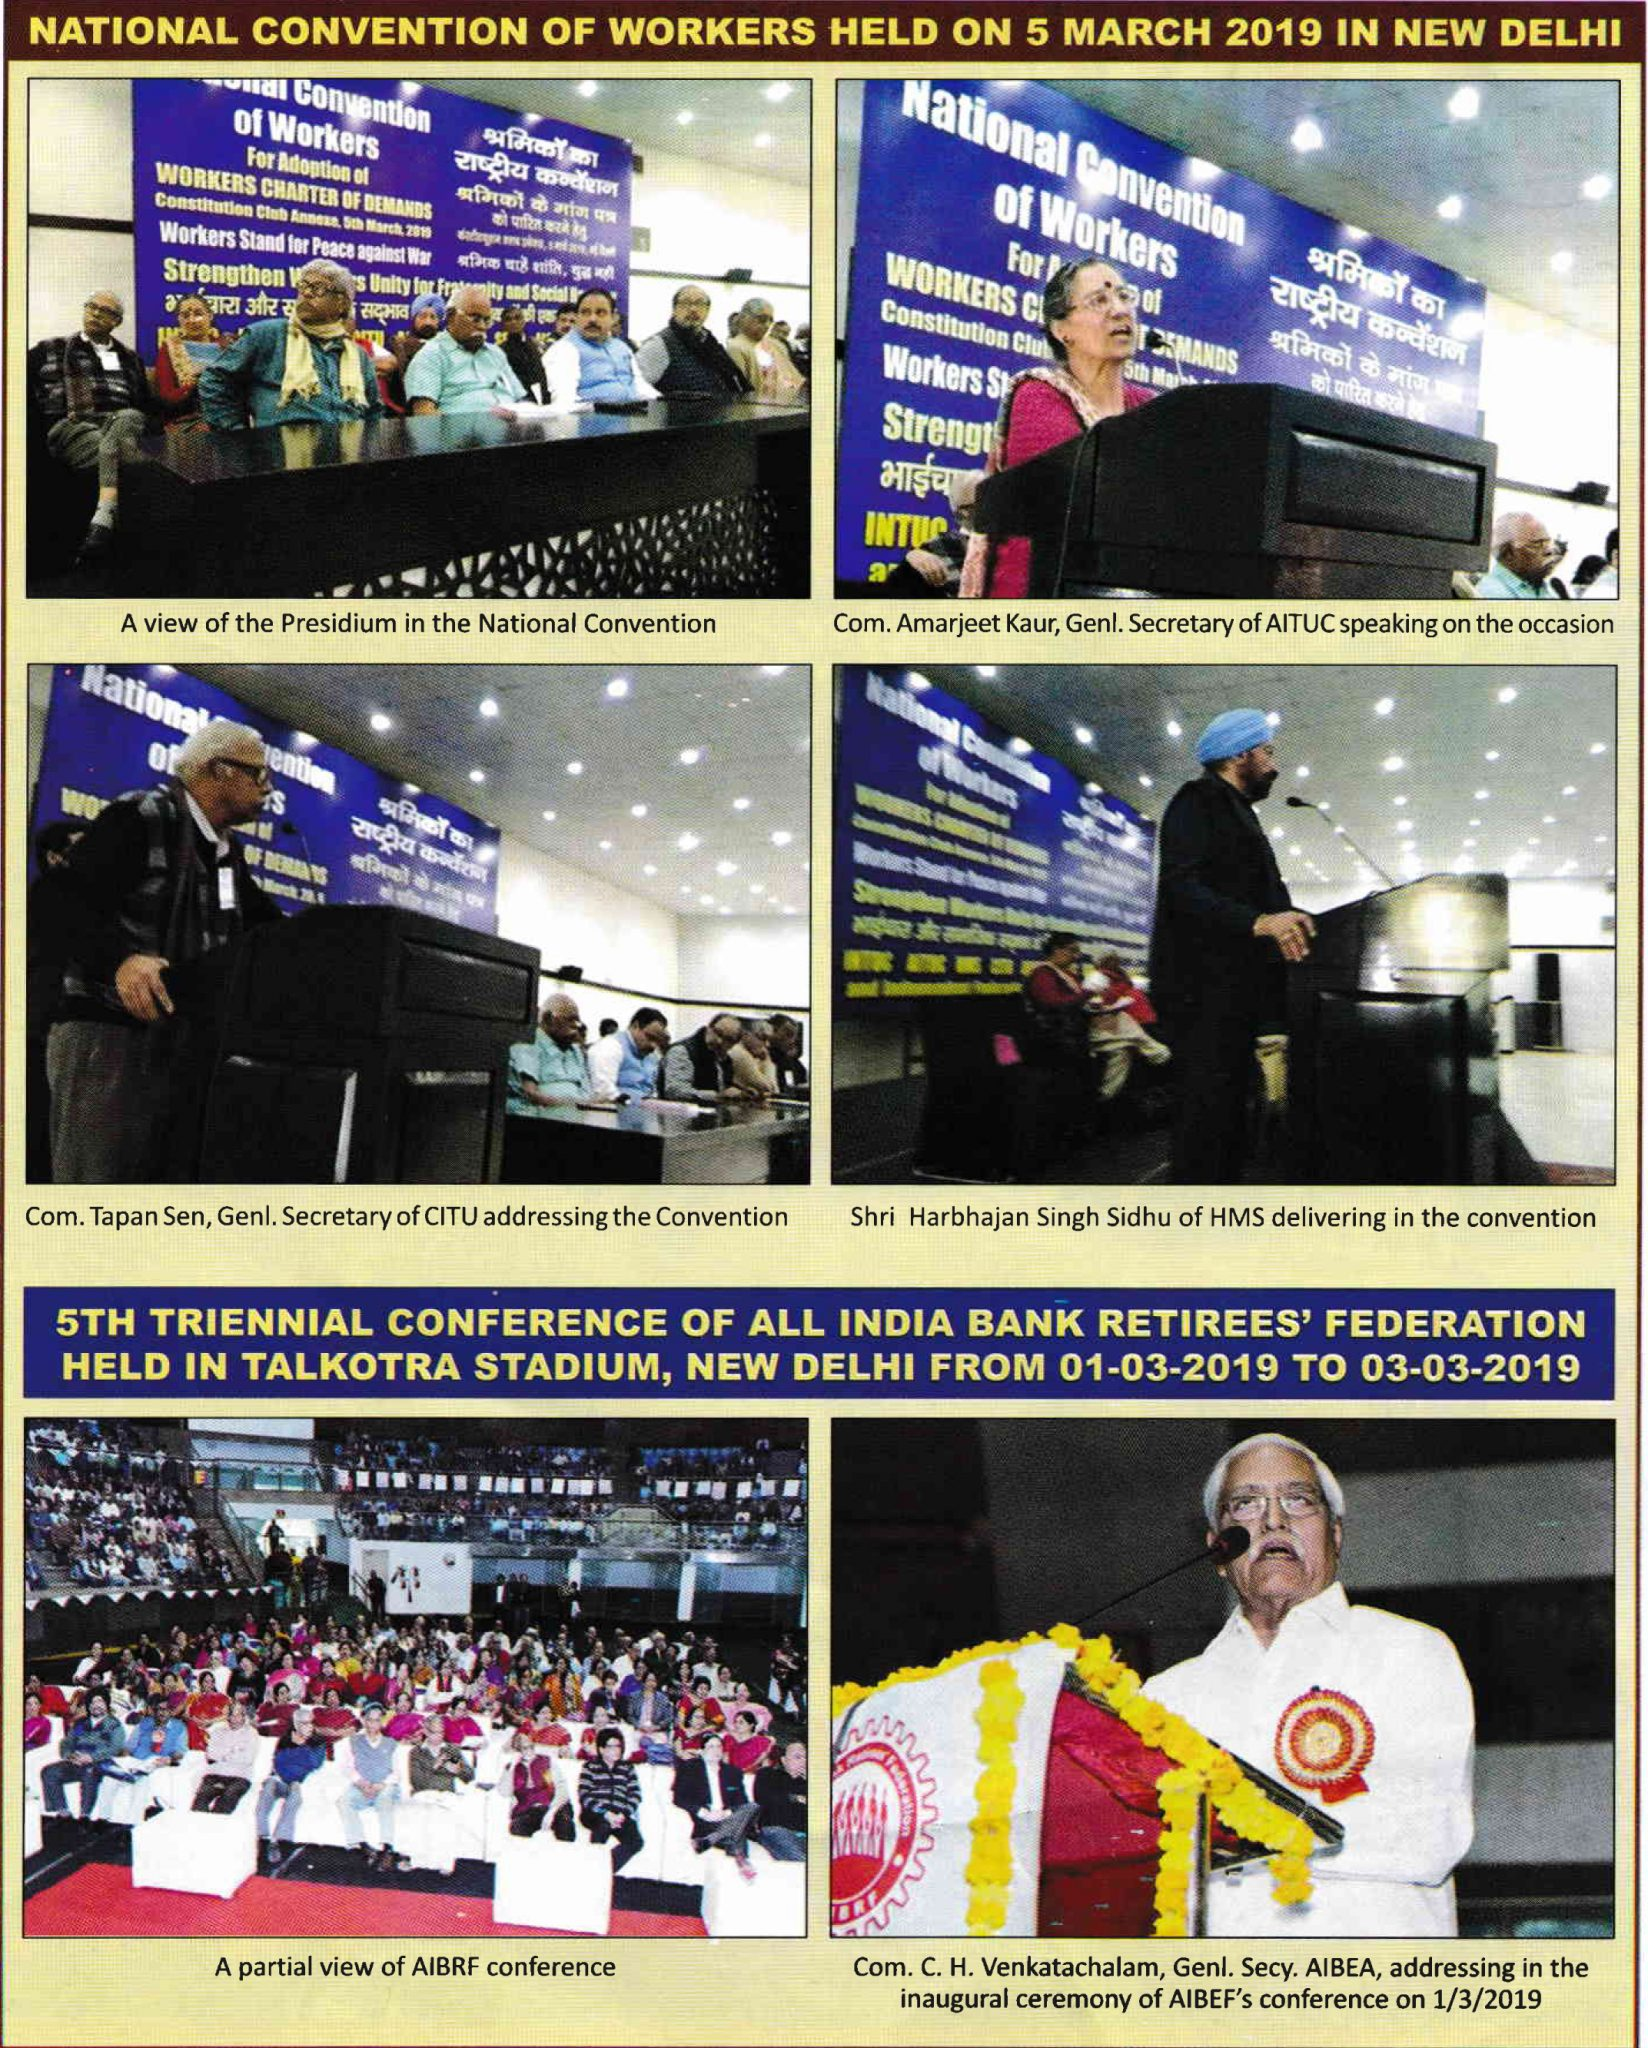 WFTU » India: National convention of workers held on 5 March